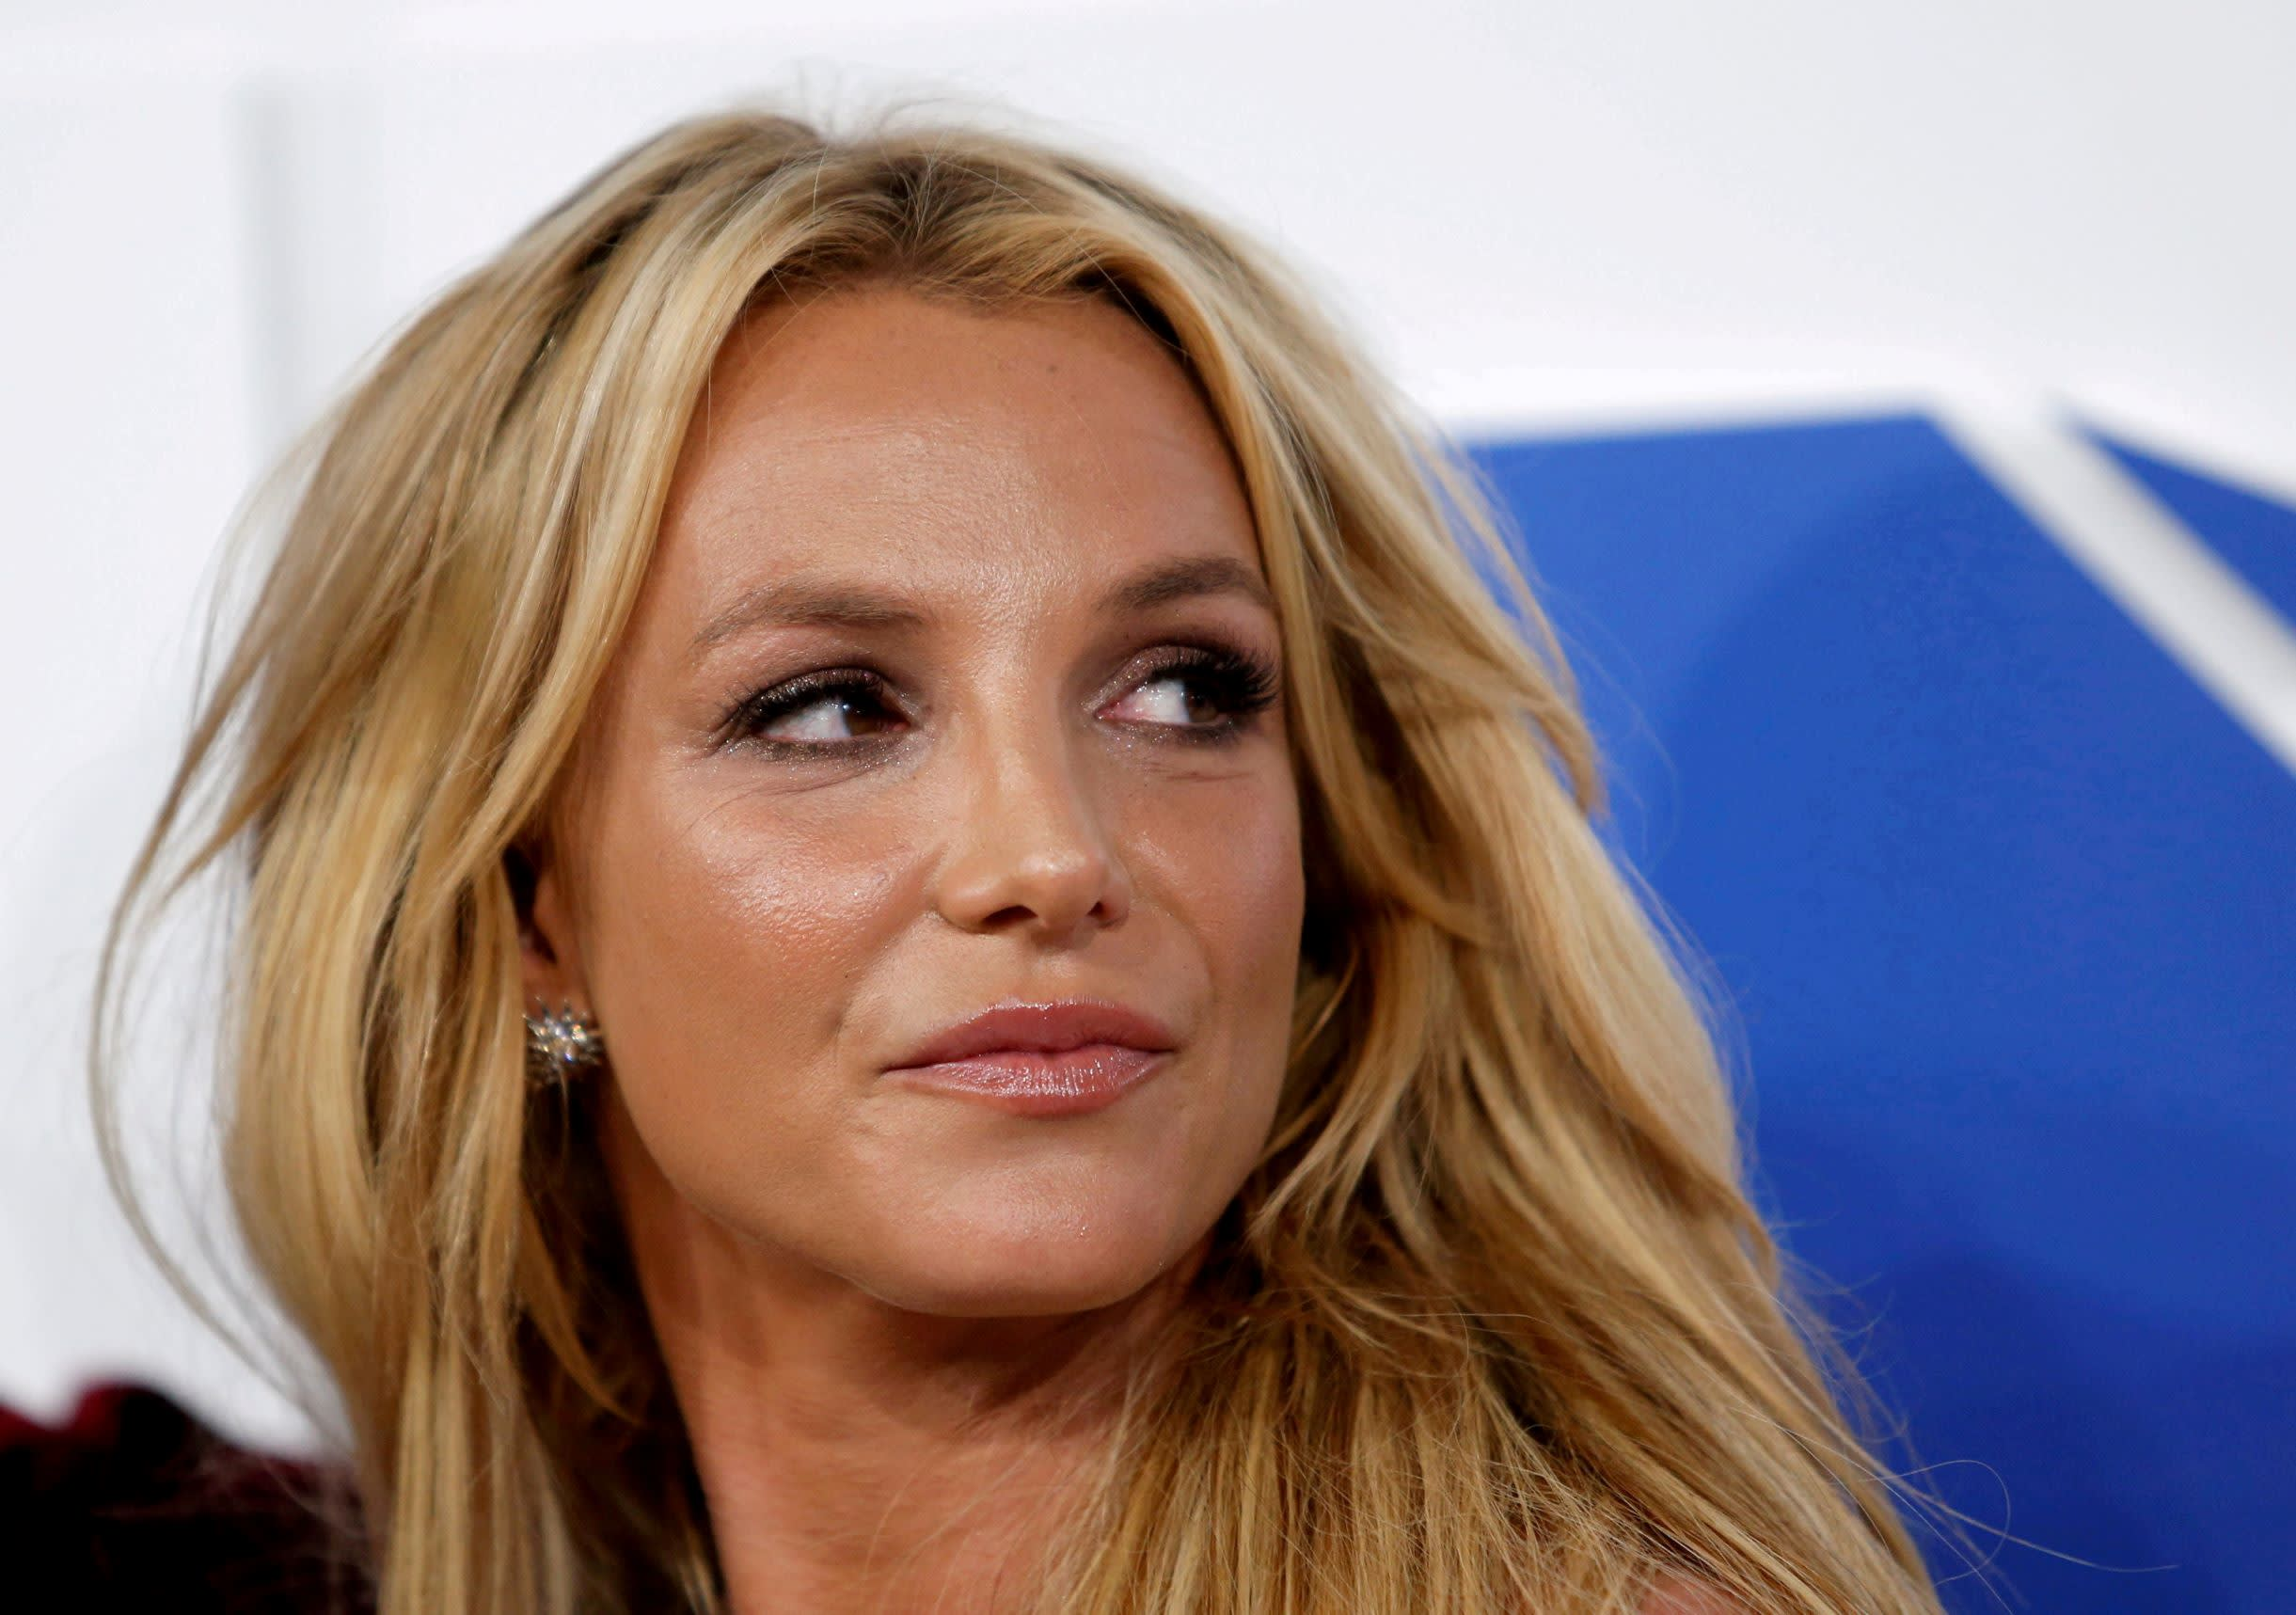 Could #FreeBritney happen in the UK?